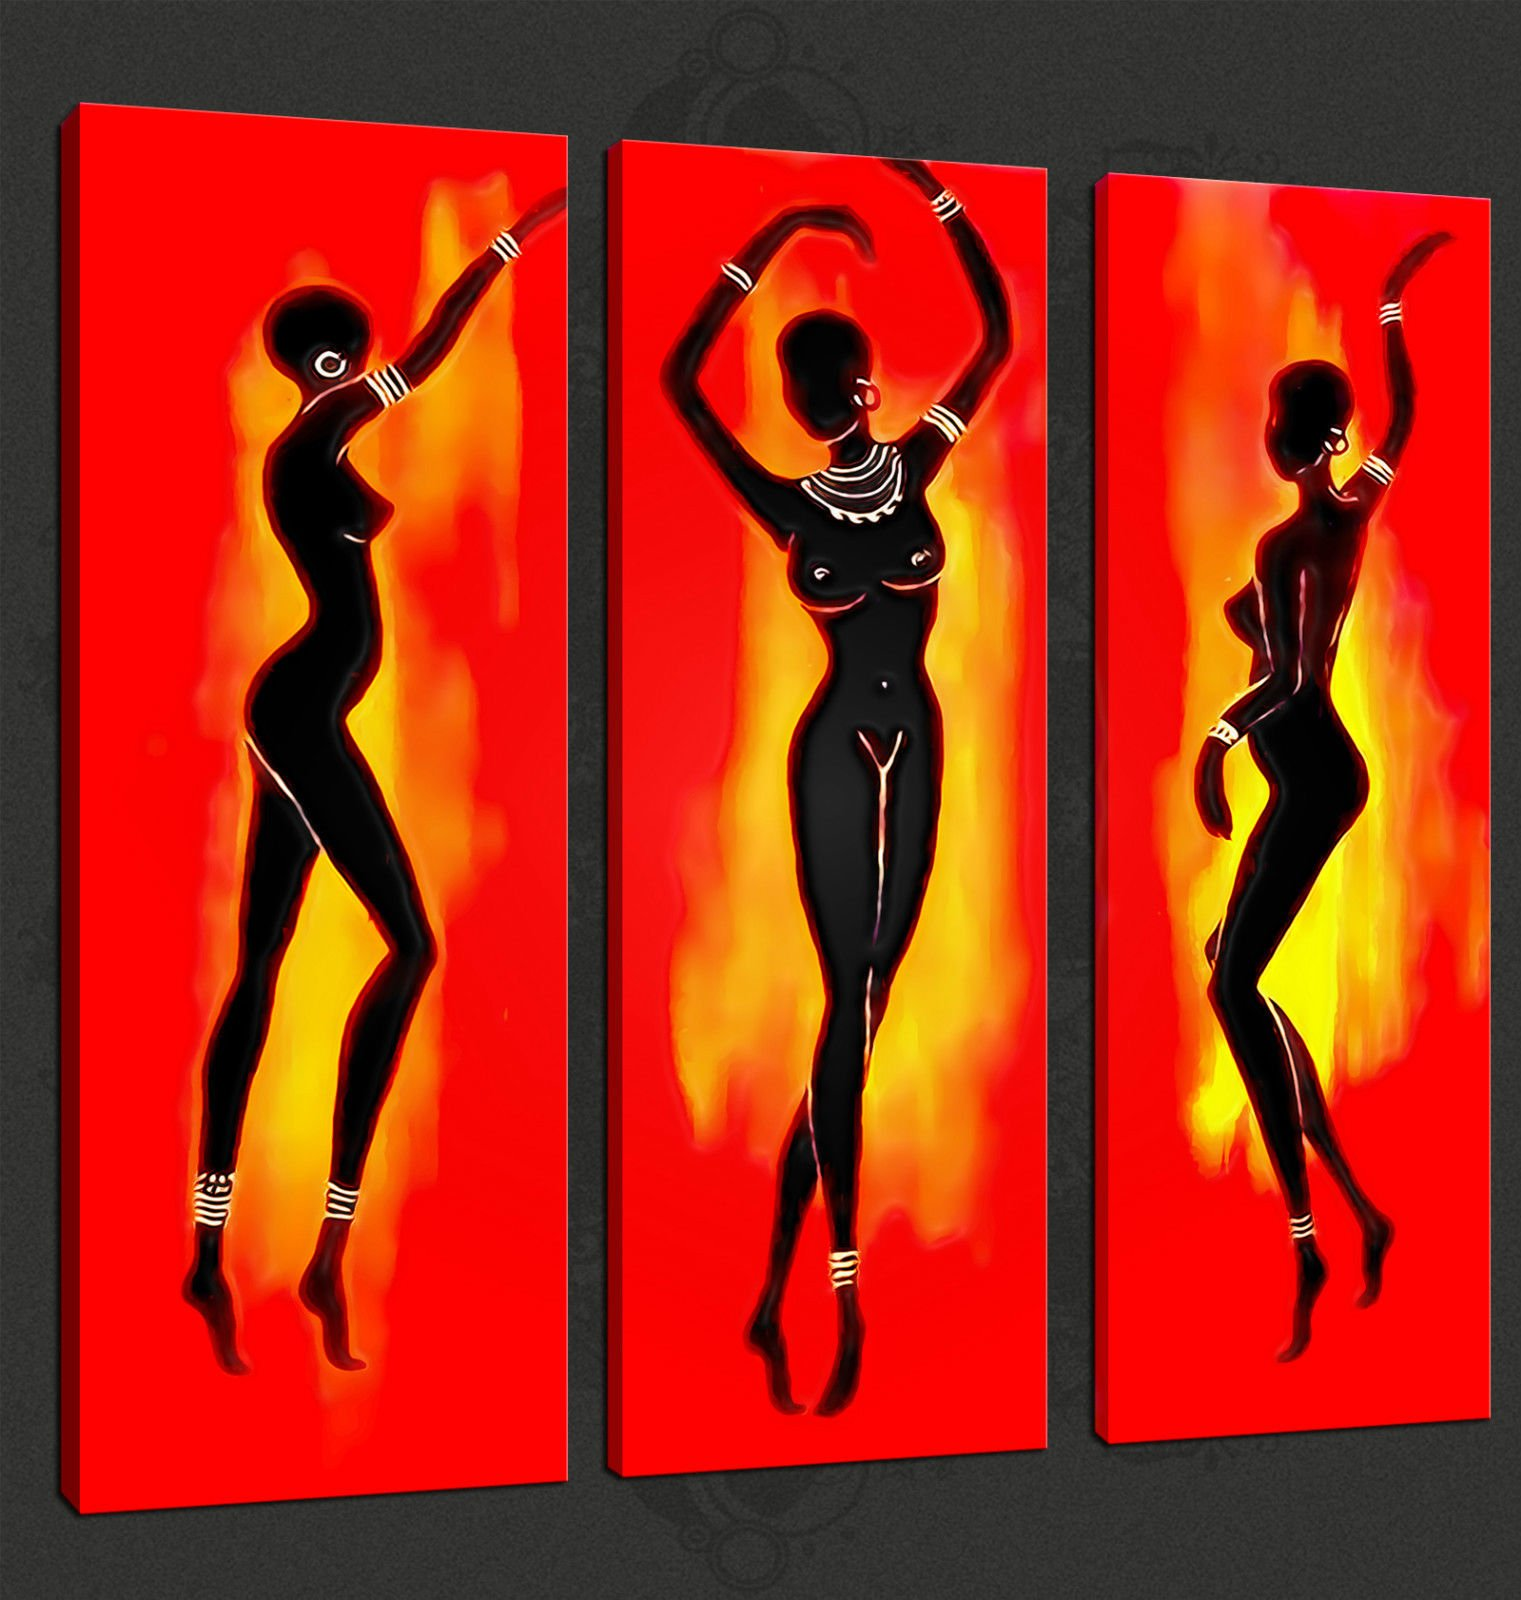 ABSTRACT AFRICAN DANCERS 3 PANELS CANVAS PRINT PICTURE